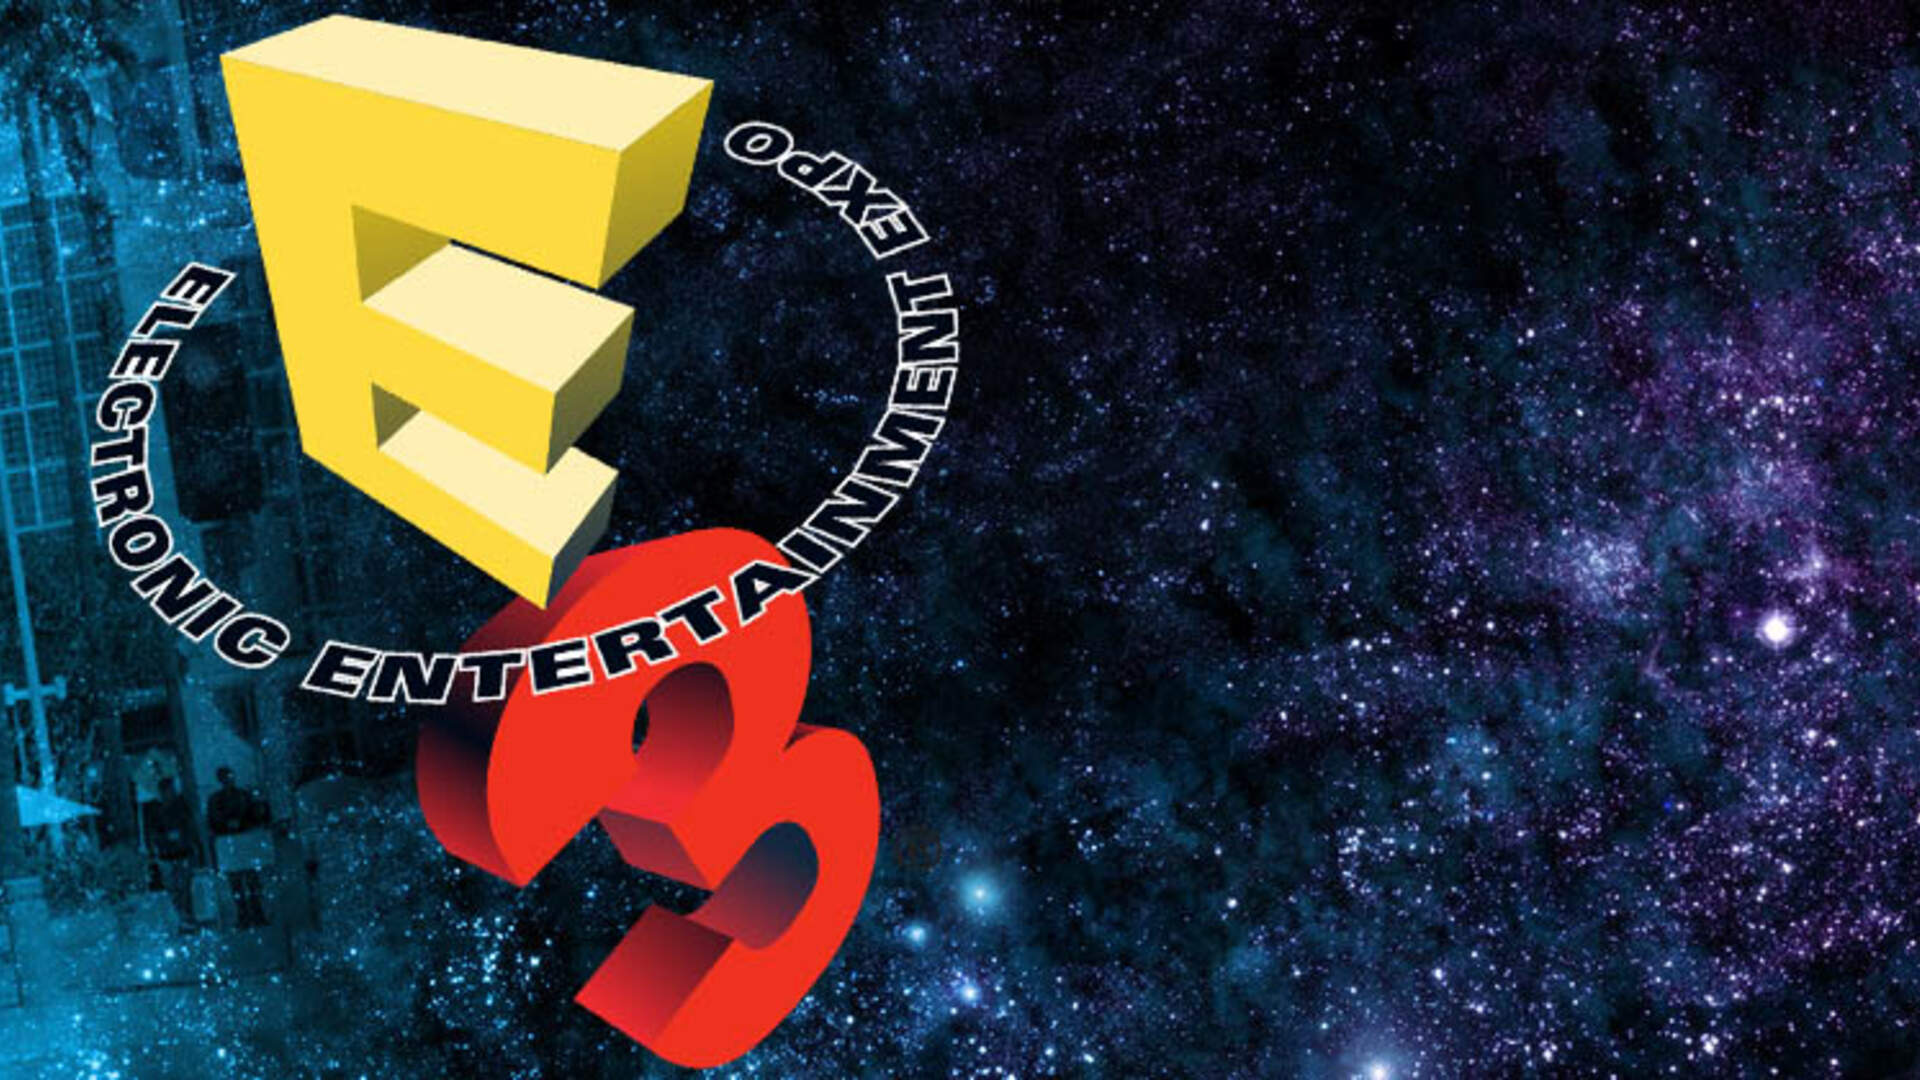 What Does the Future Hold for E3?